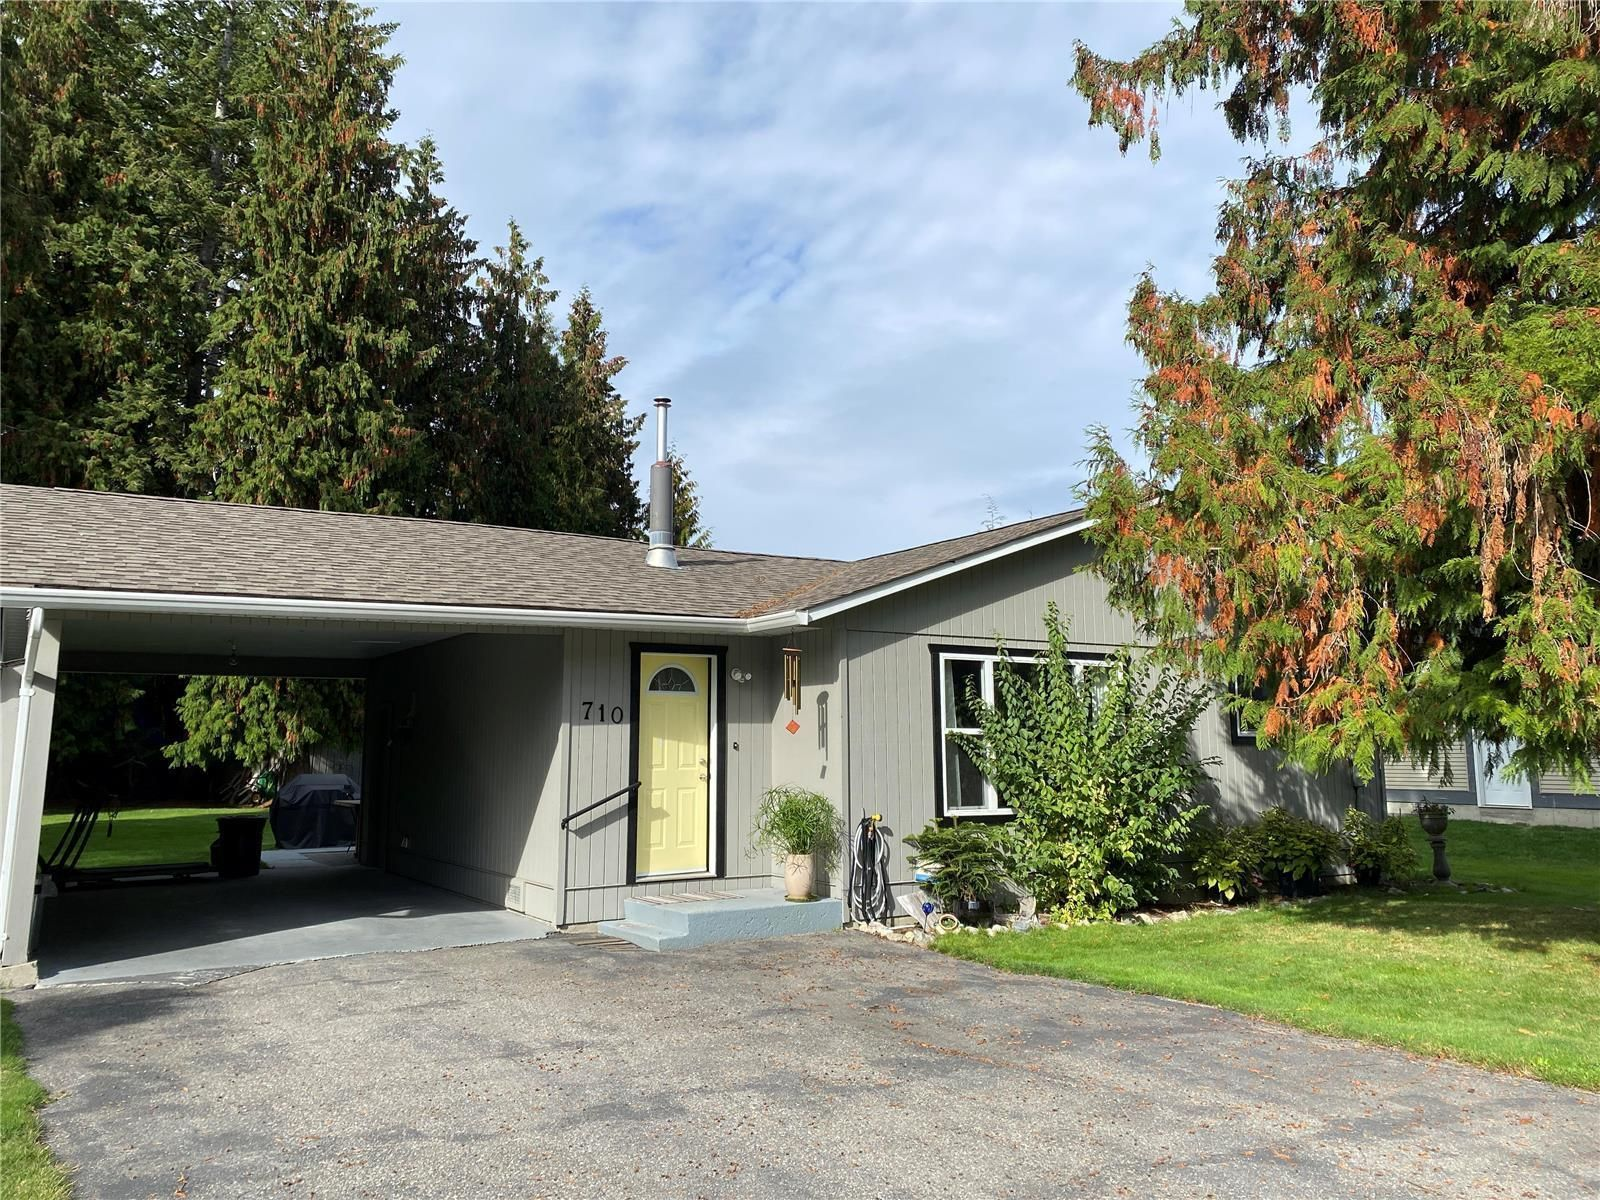 Main Photo: 710 Hemlock Crescent, S in Sicamous: House for sale : MLS®# 10240981